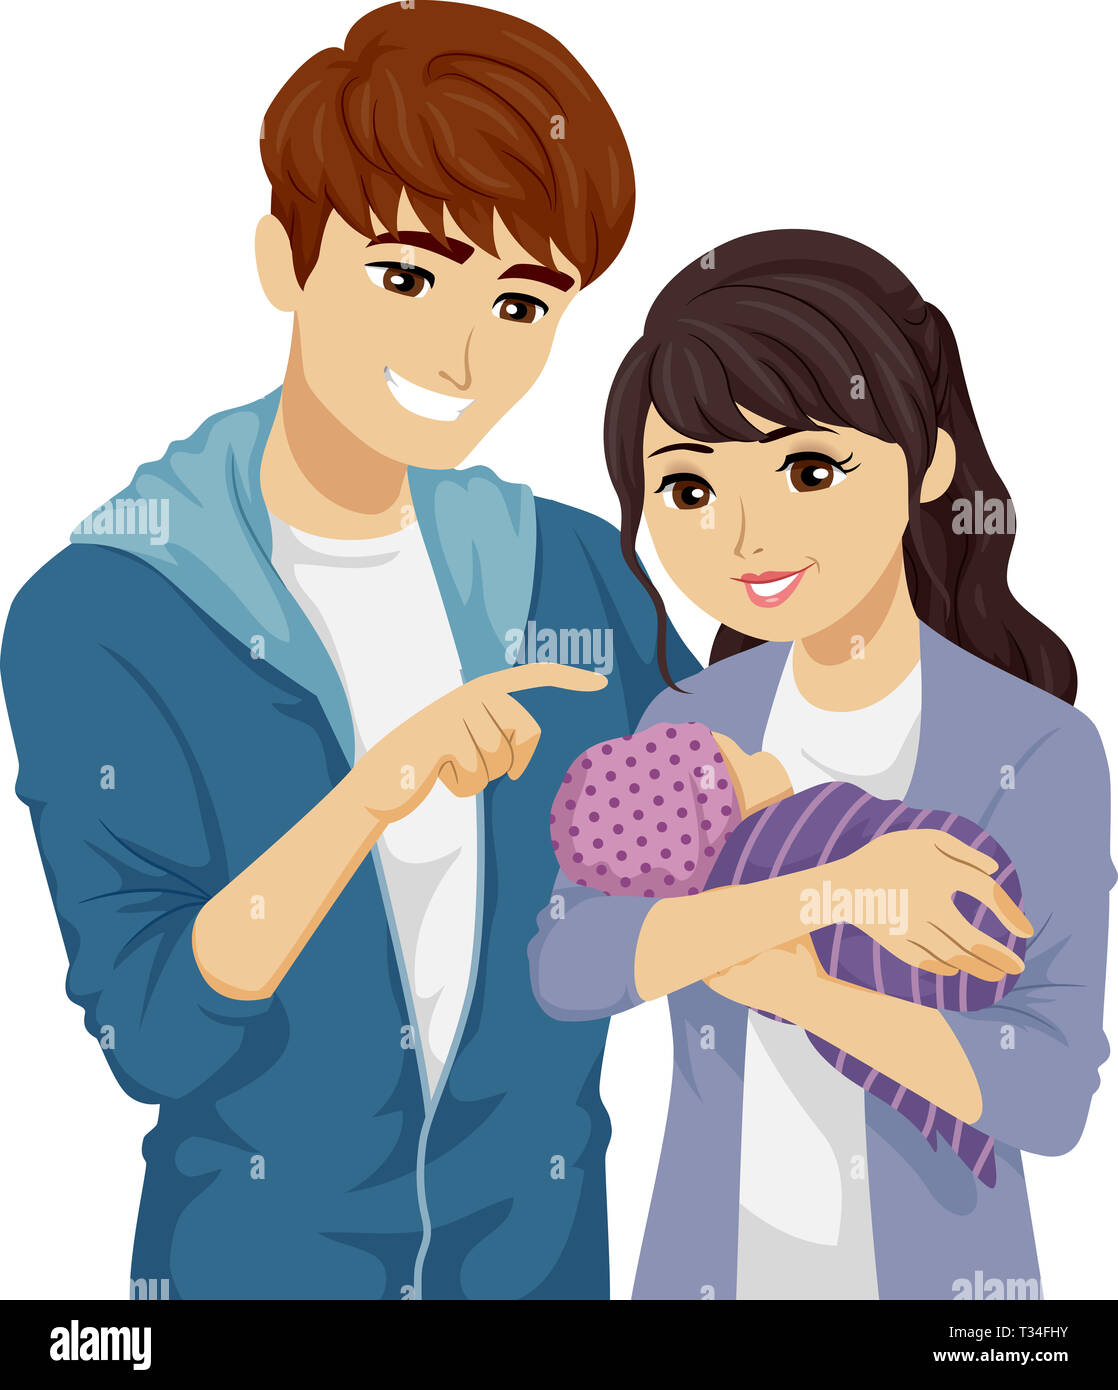 Illustration Of A Young Teenage Girl And Guy Holding Their Baby As First Time Mother And Father Stock Photo Alamy